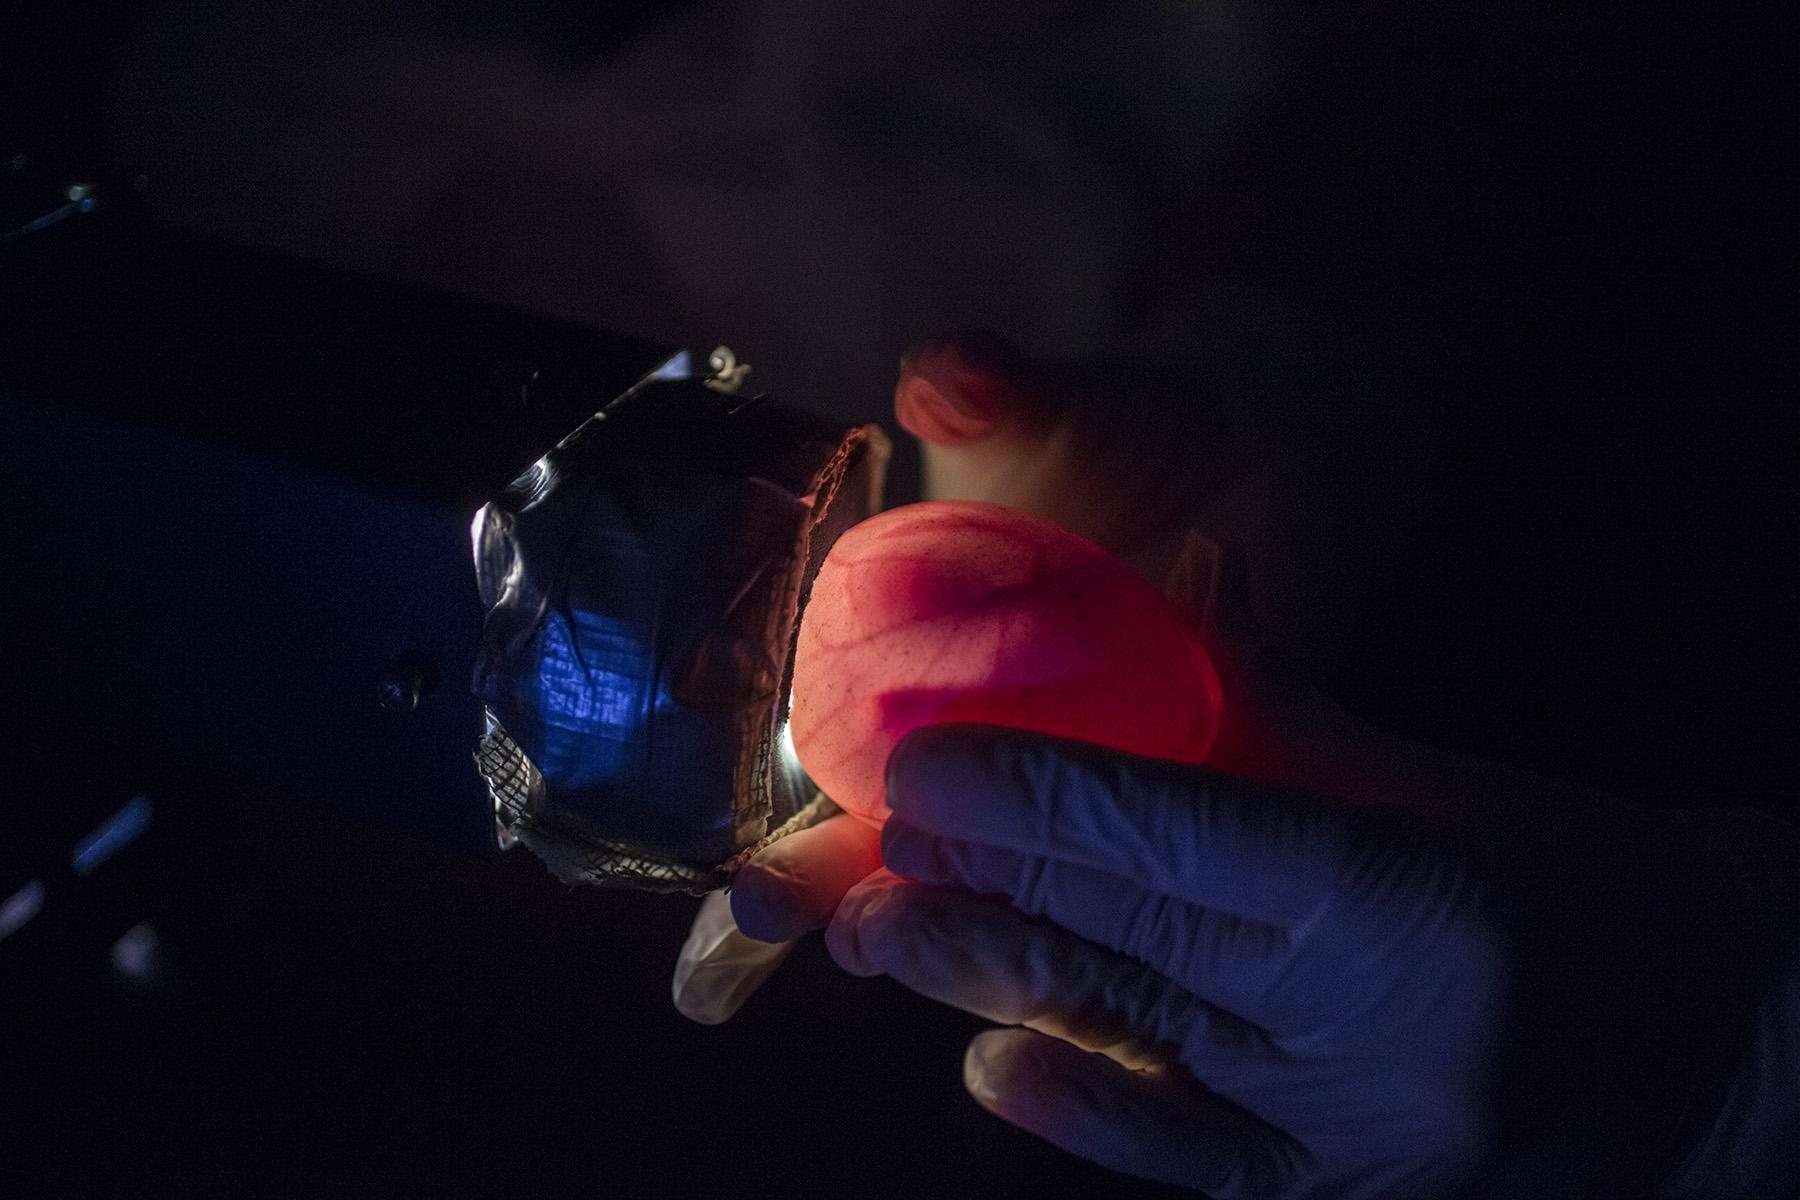 A Shedd Aquarium specialist uses a strong light to observe inside the penguin egg and monitor the chick's growth as part of a process known as candling. (Courtesy Shedd Aquarium)